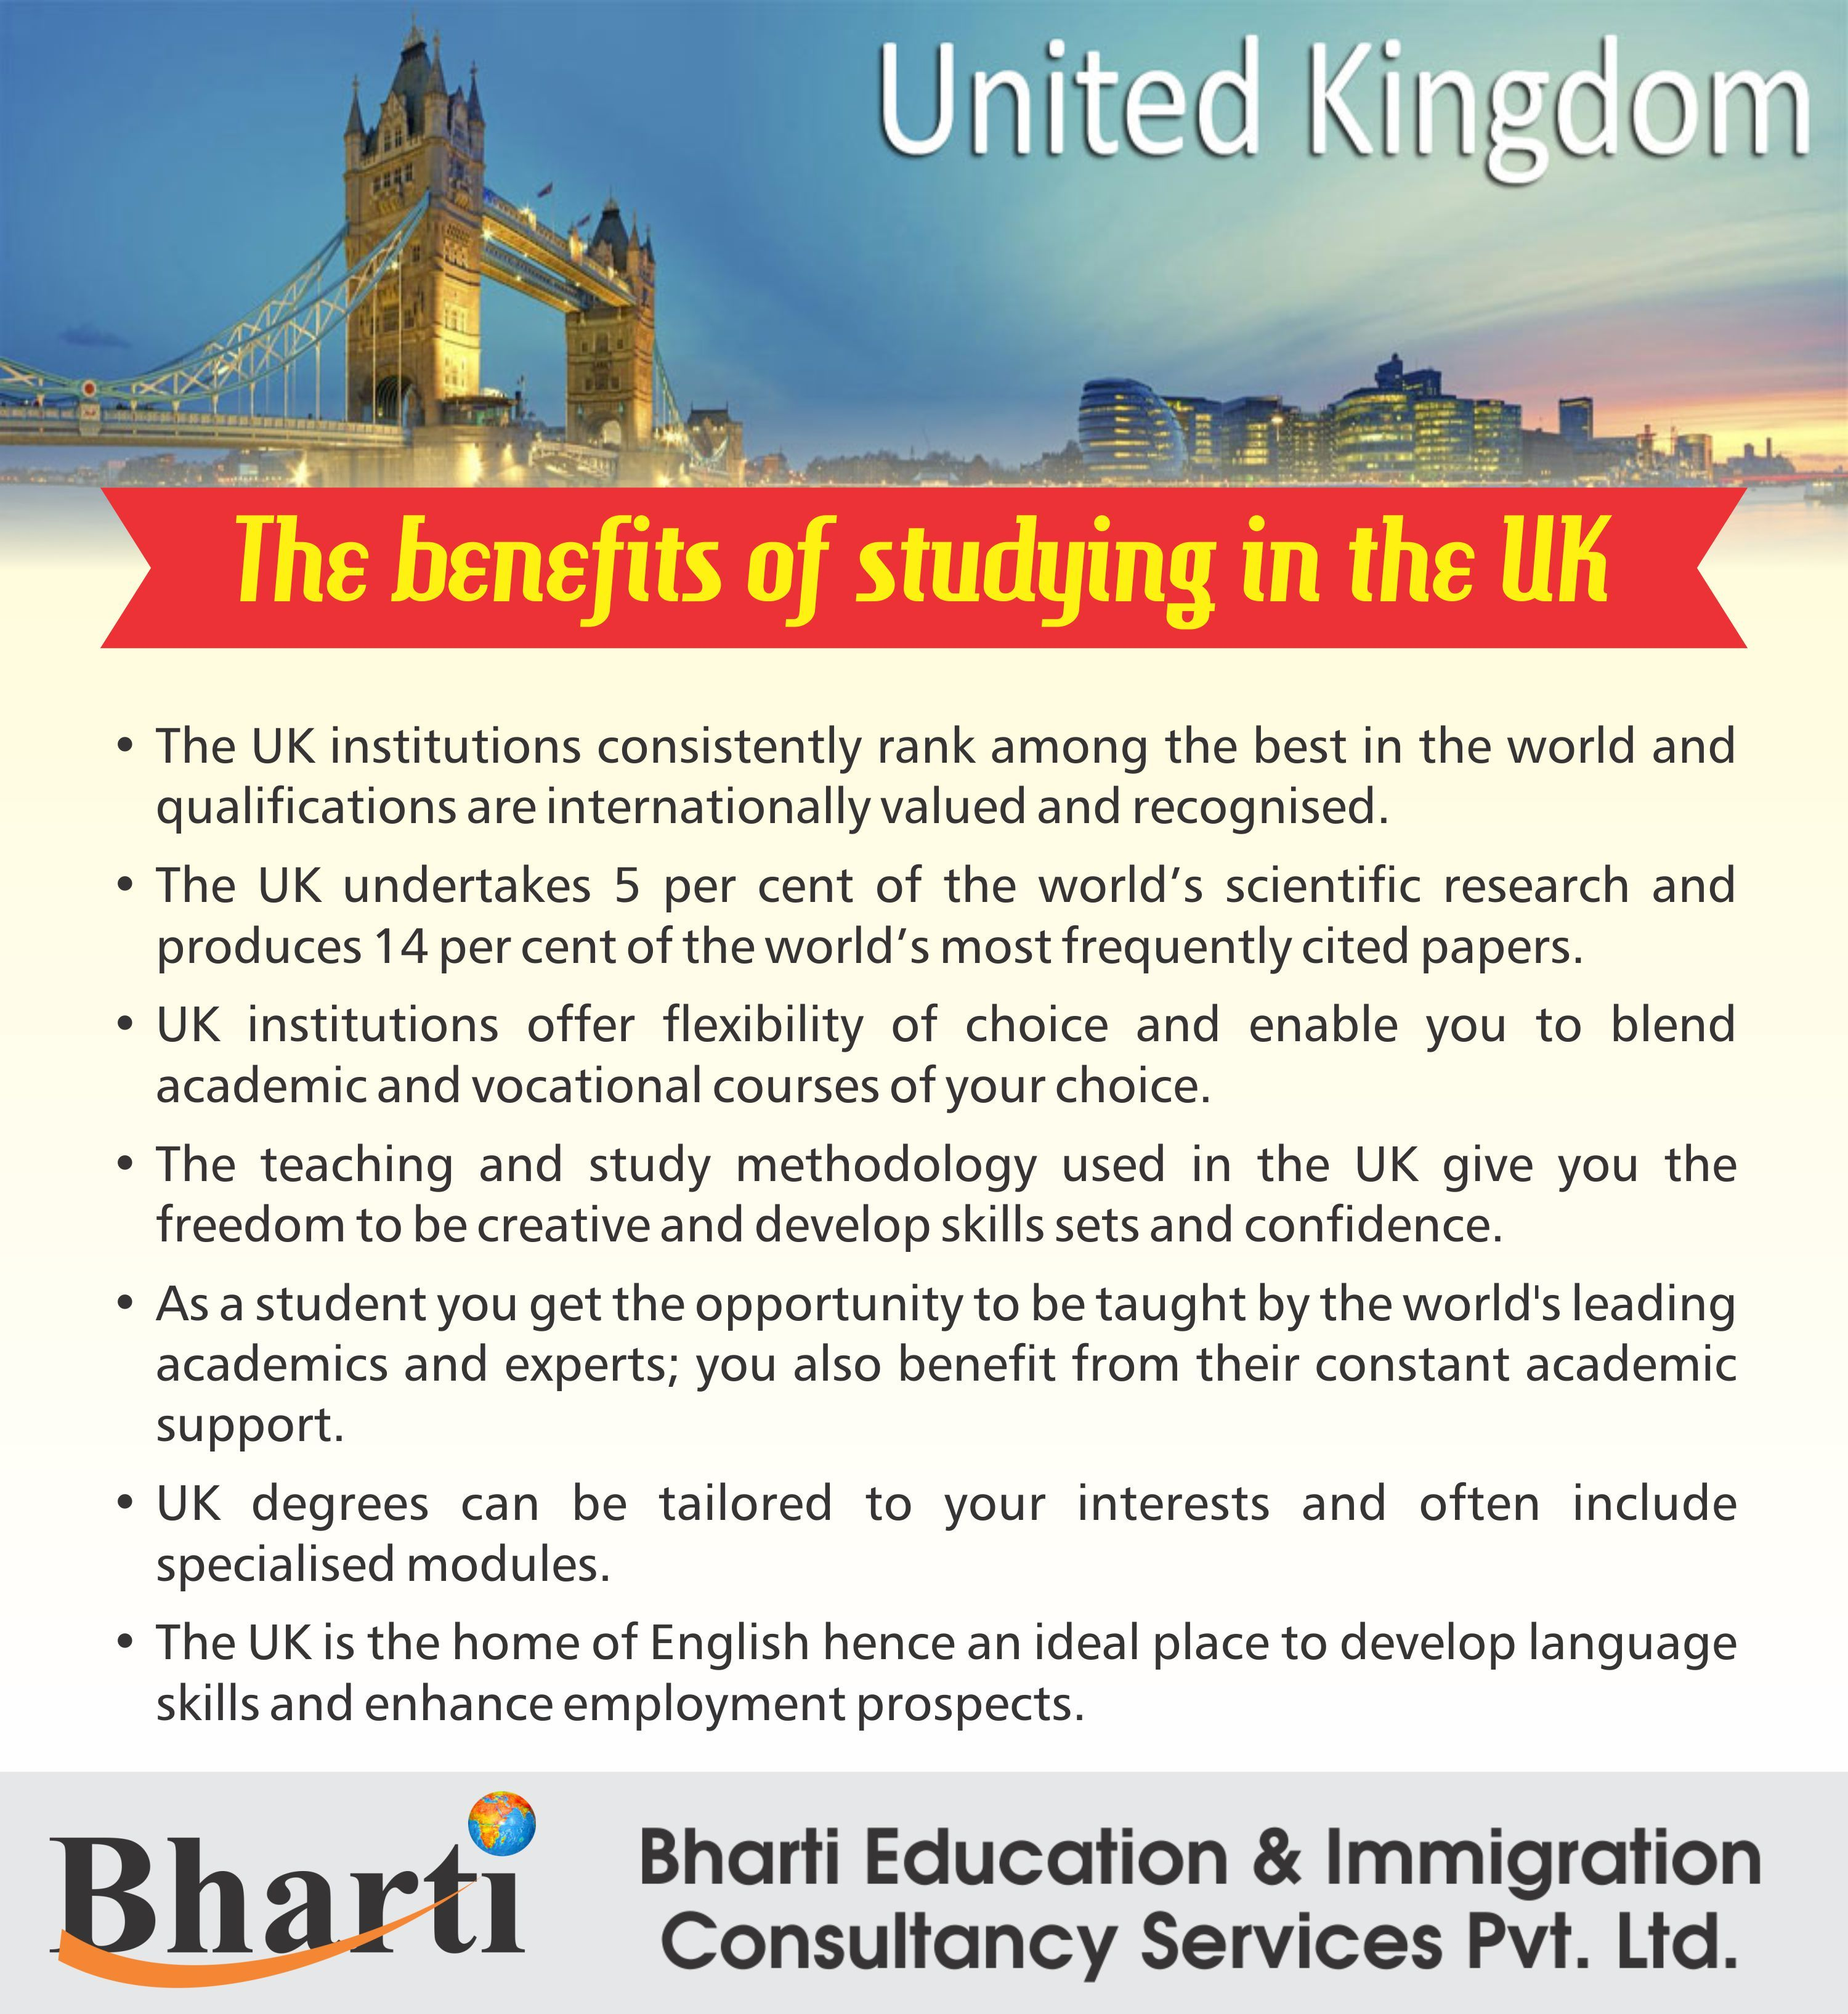 want to study in canada contact bharti immigration consultancy bharti immigration consultancy 91 855 8899 678 httpbhartigroupin bharti - Best Careers For Women Per Skill Sets Advantages